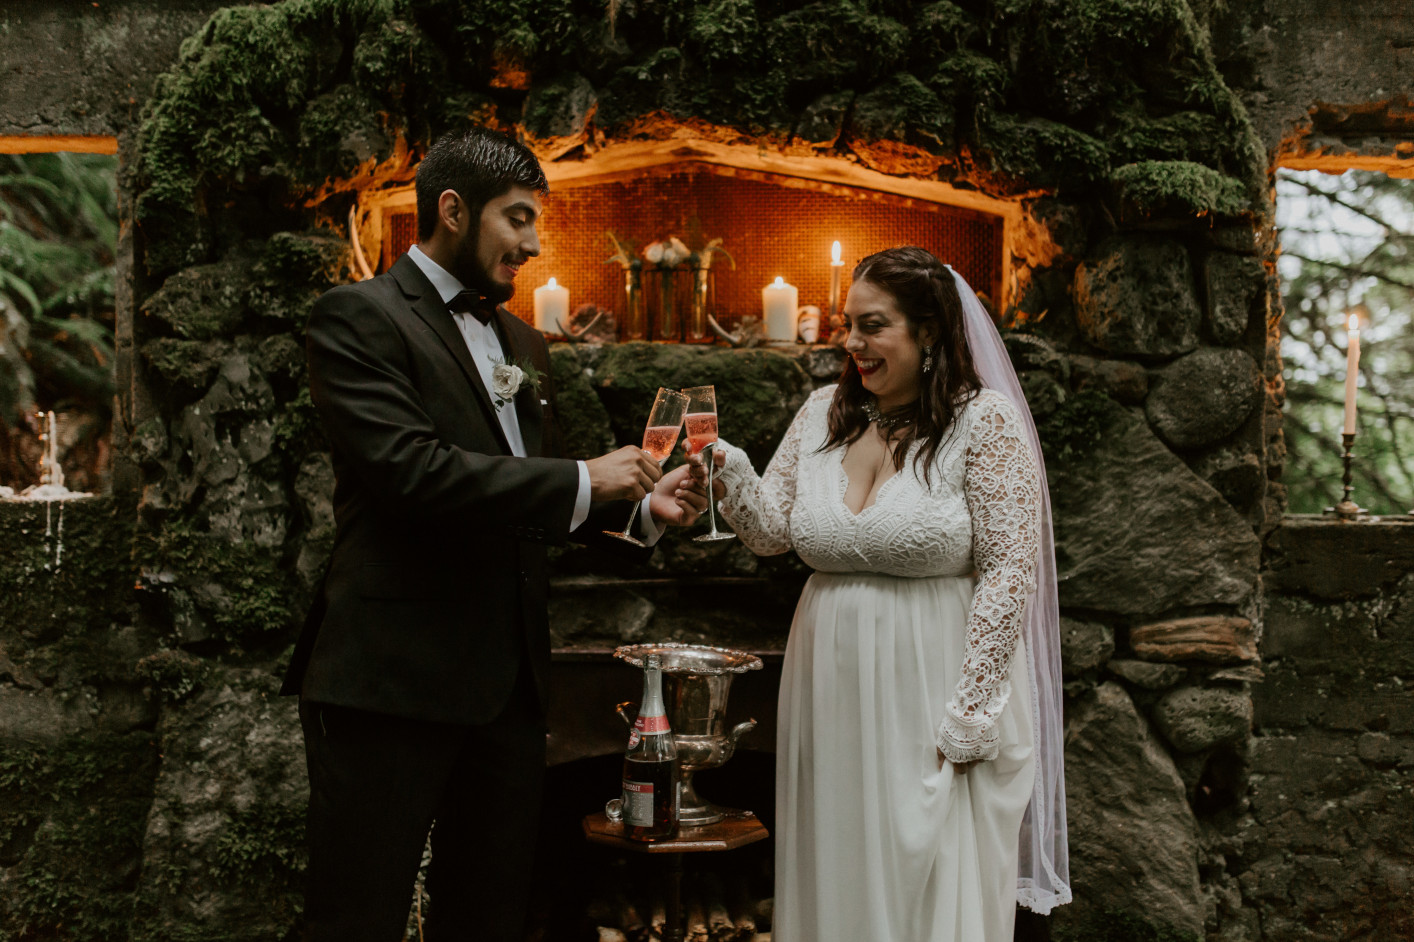 Sarah and Sam cheering with glasses of champagne at Skamania House, Washington. Elopement photography in Portland Oregon by Sienna Plus Josh.